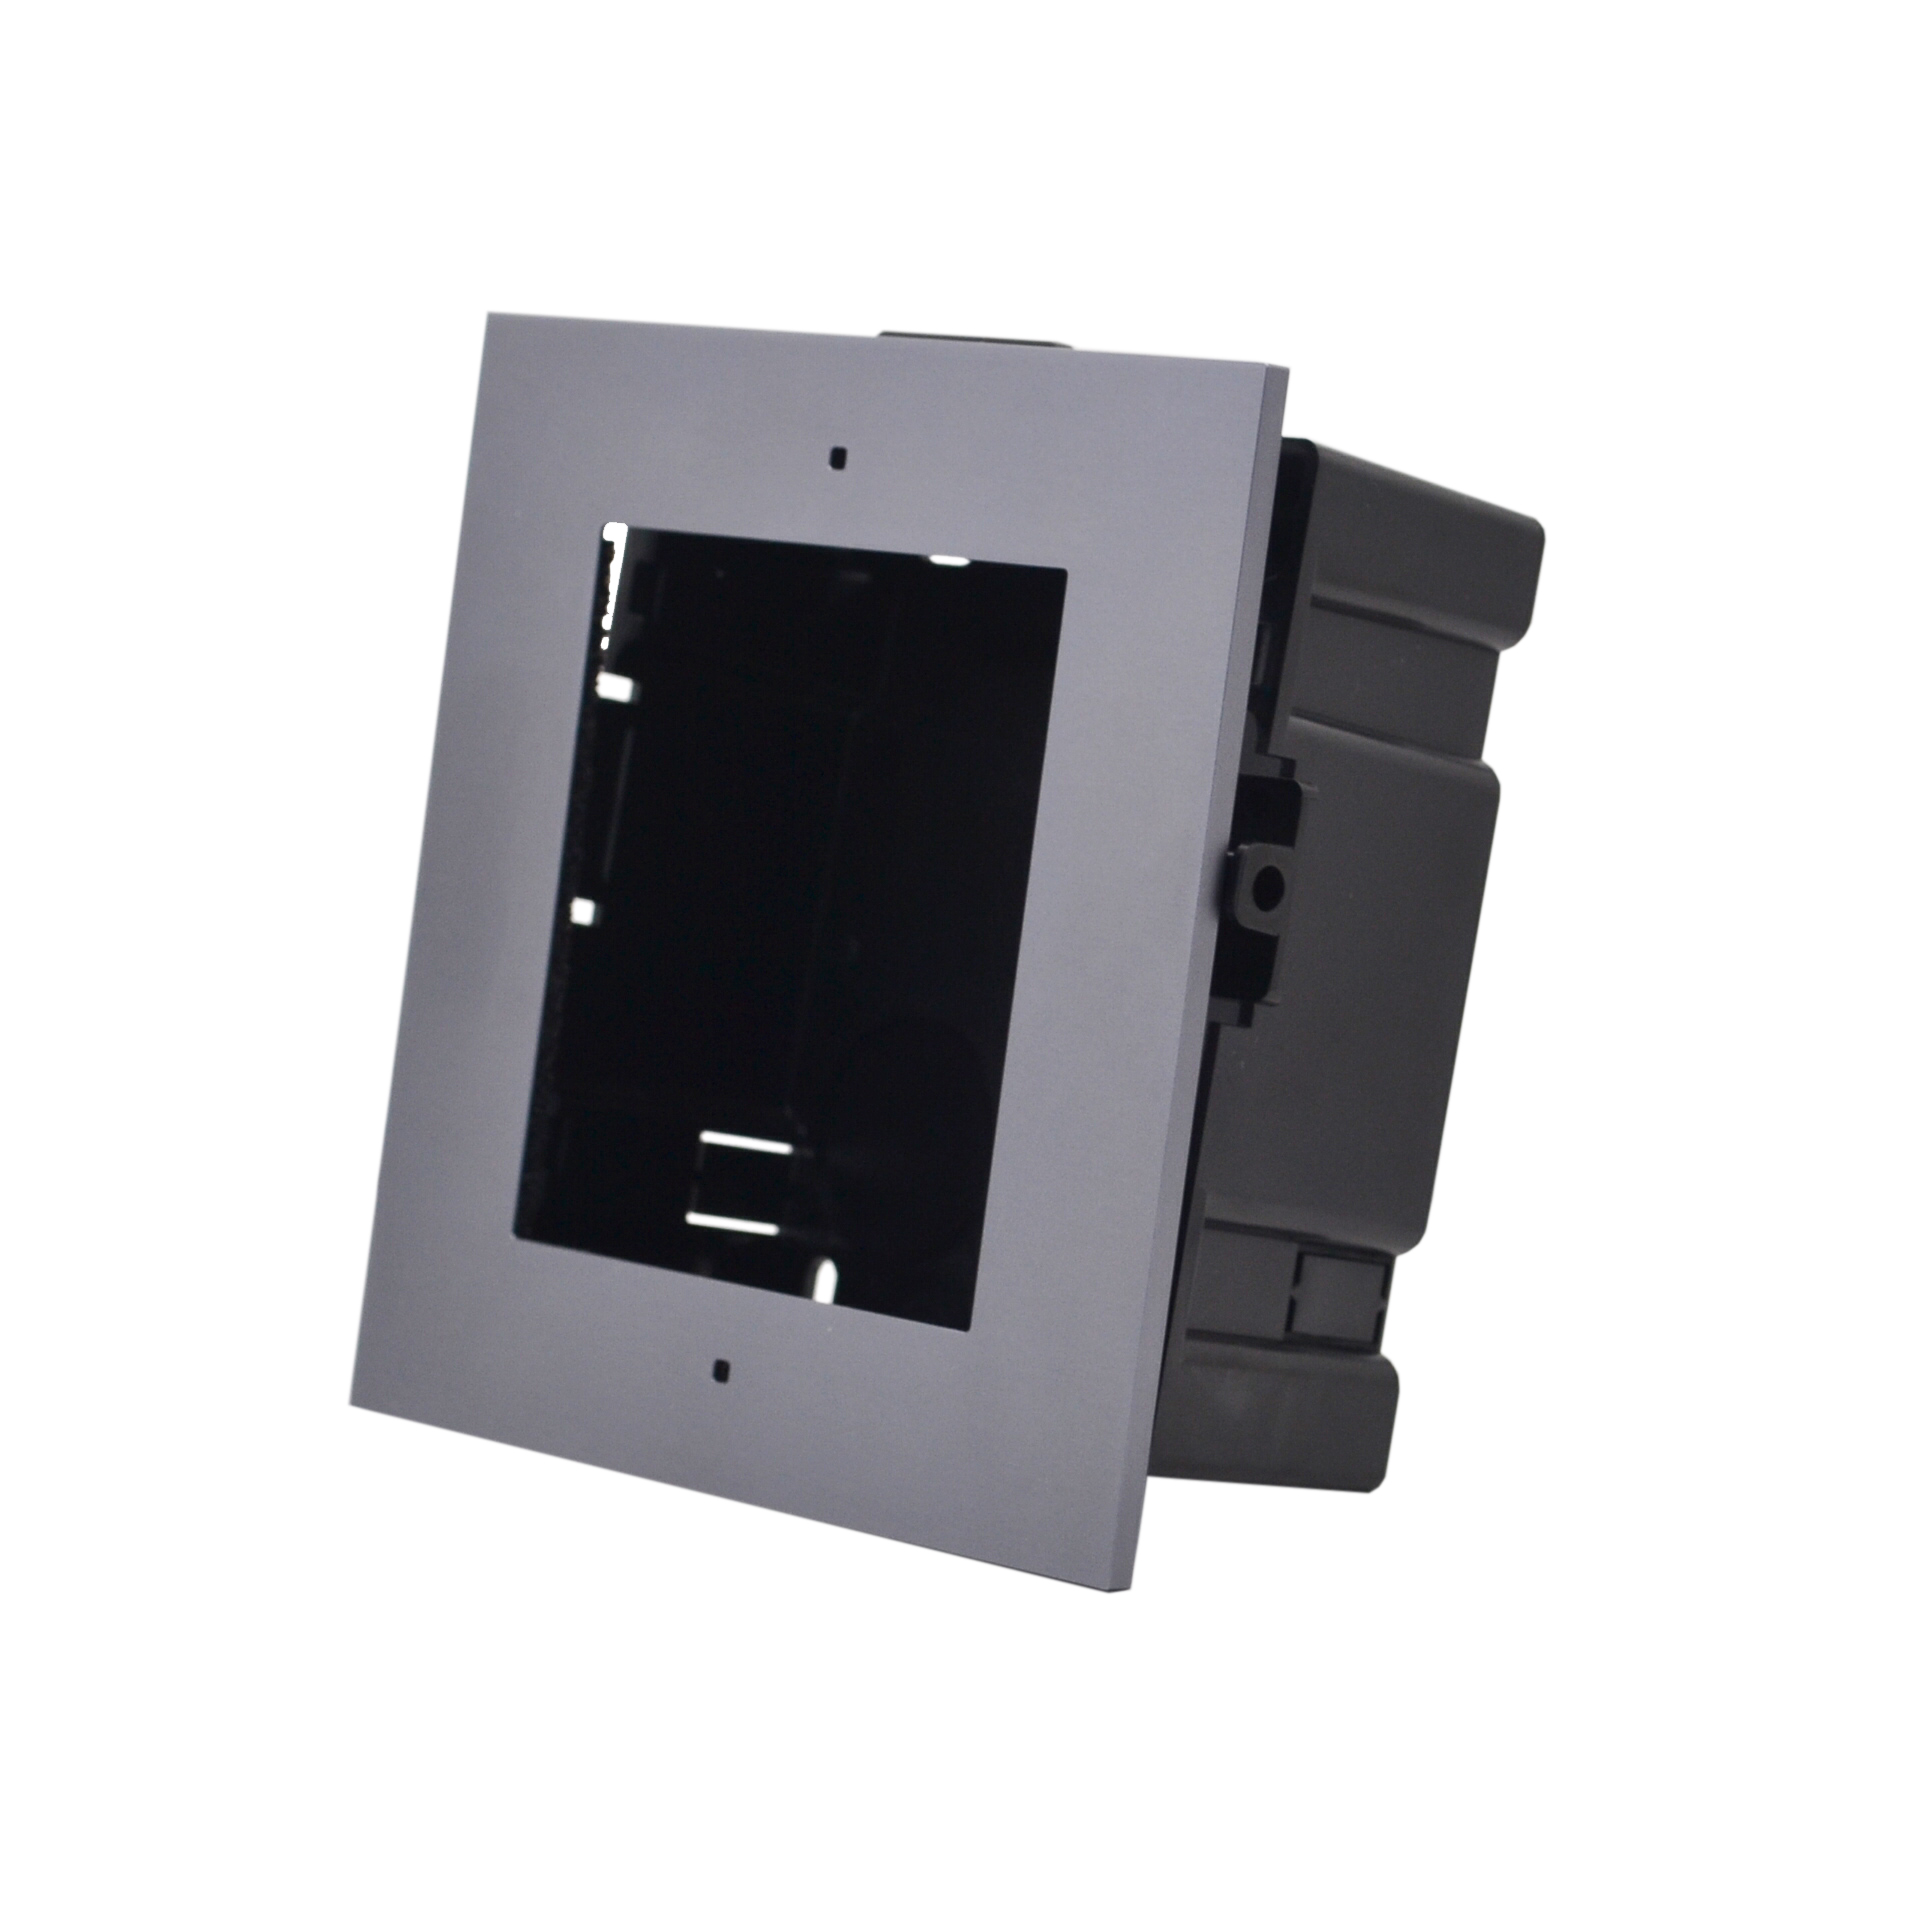 DS-KD-ACF1(Plastic) For Flush Mounting Accessory For Modular Door Station